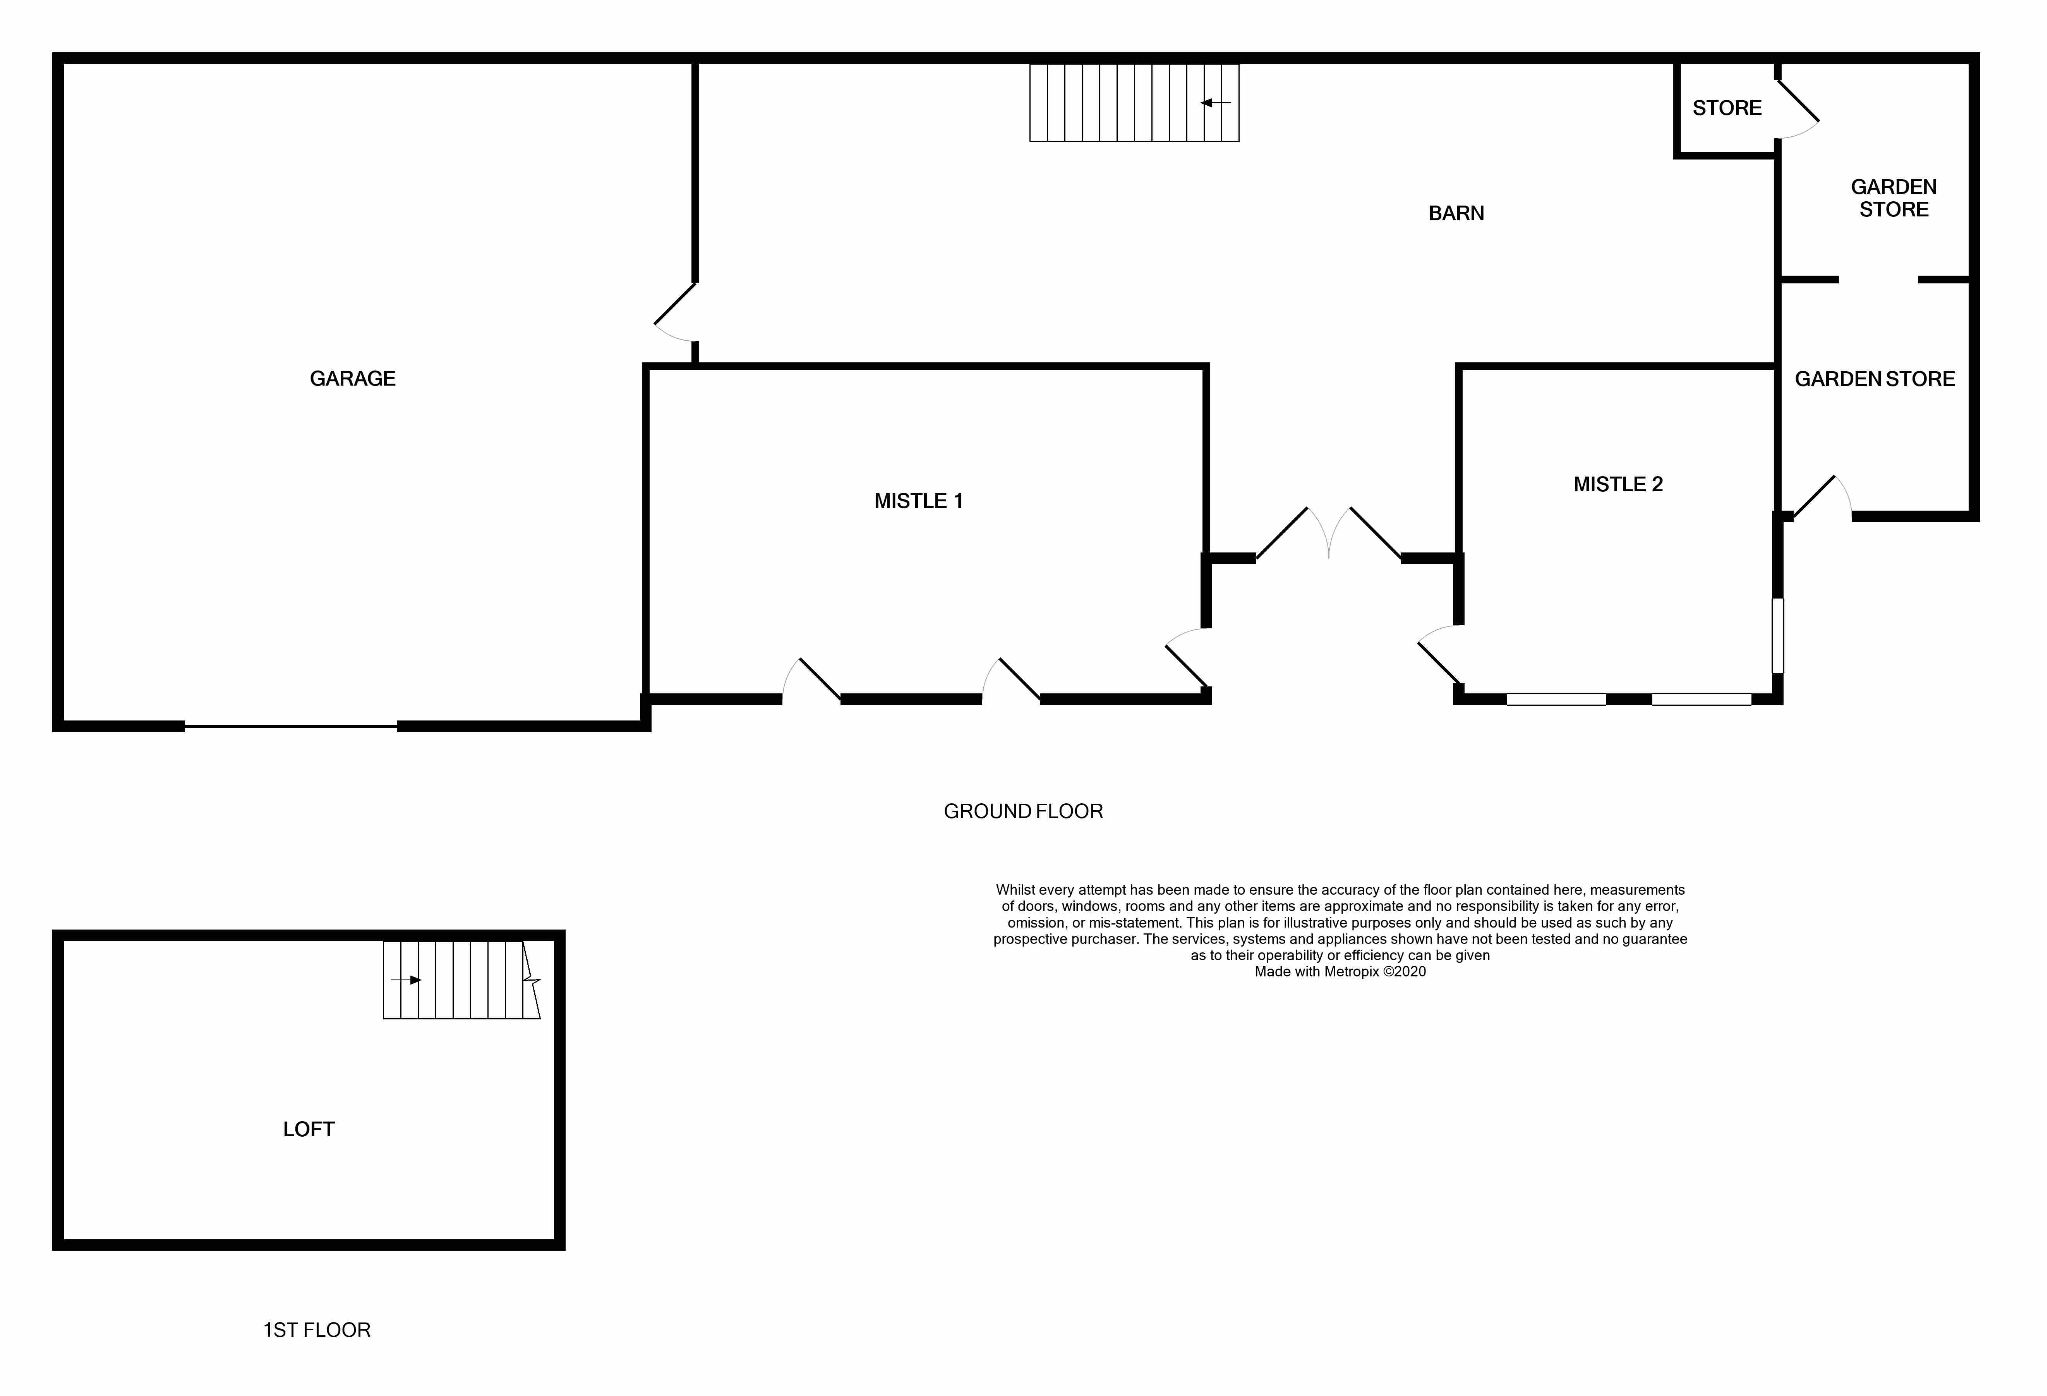 Farm House For Sale in Halifax - Floorplan 2.